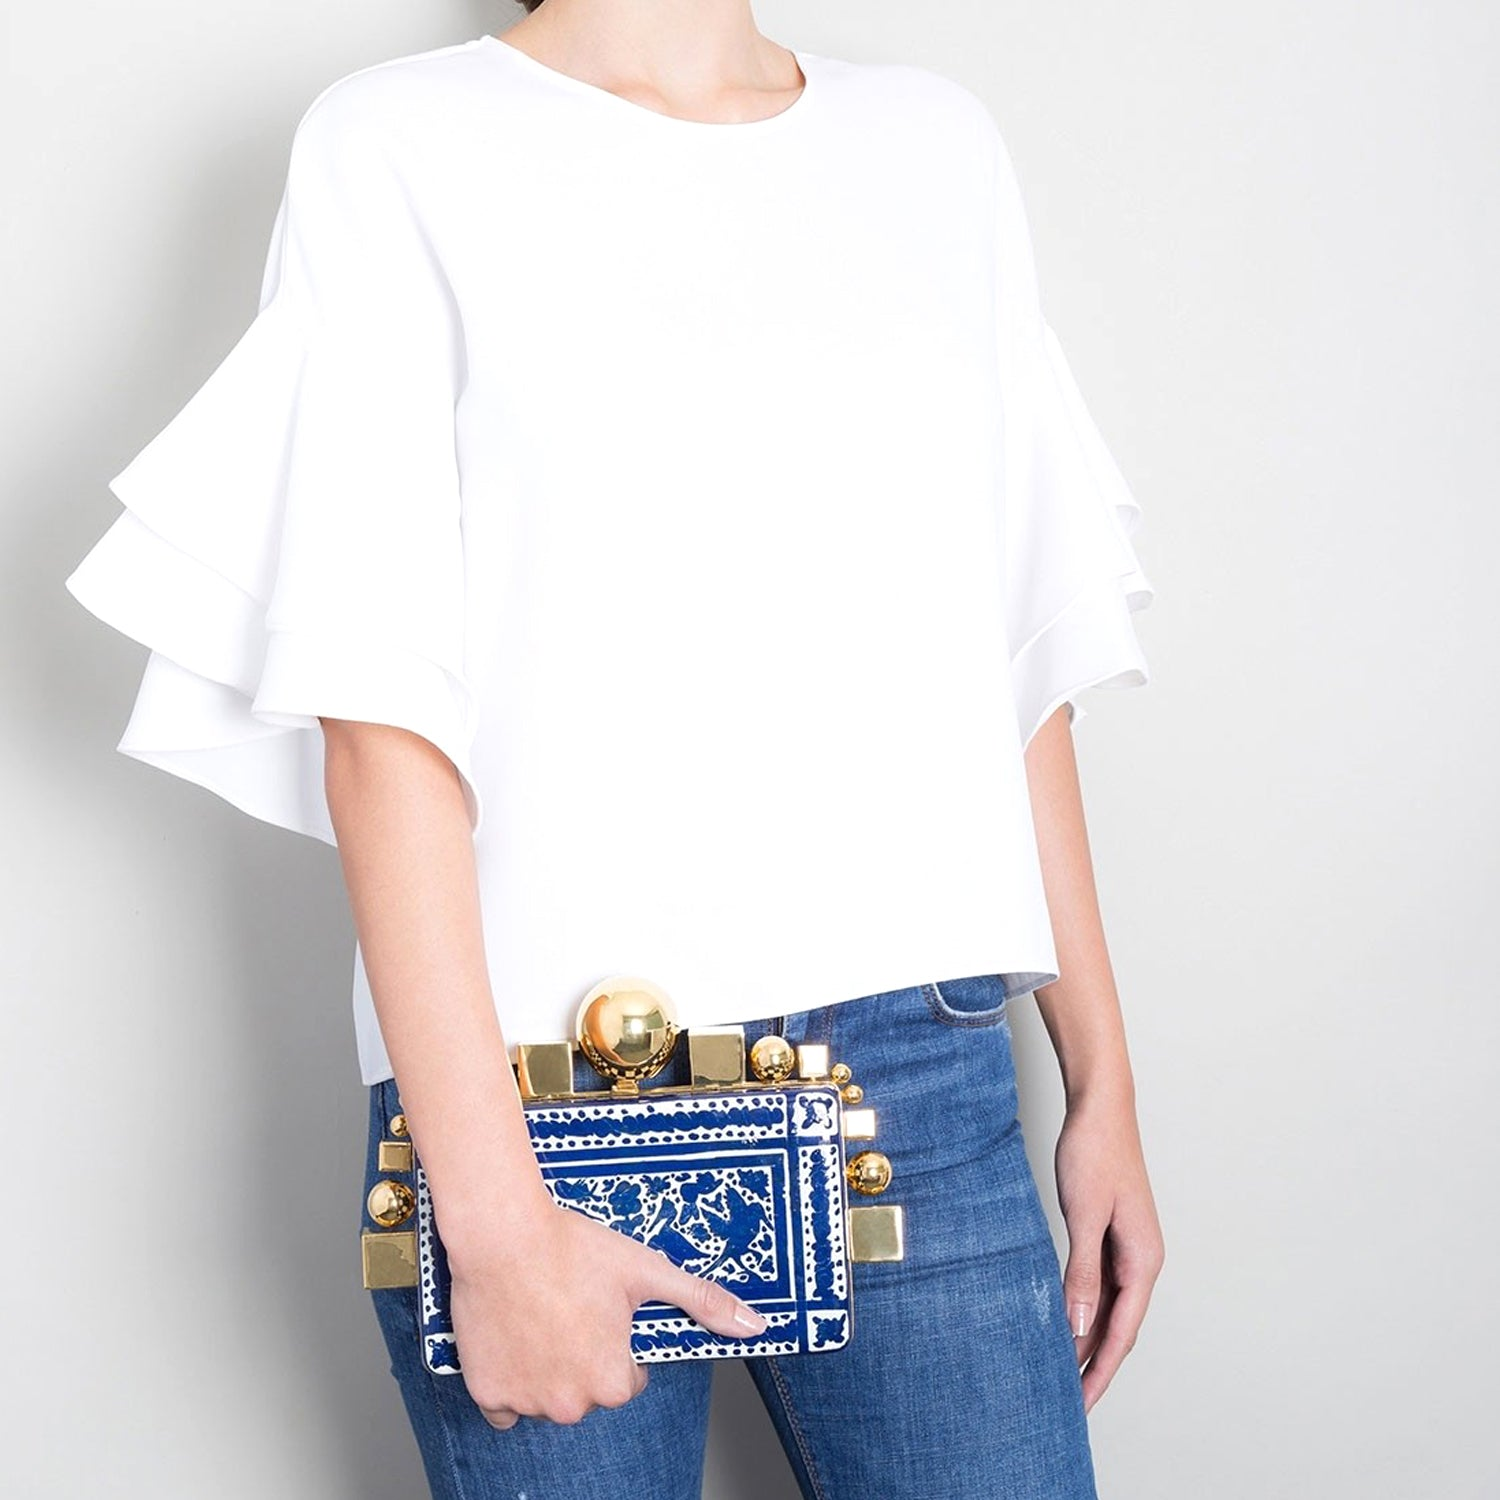 Olinalá Jewel Clutch by Daniel Espinosa